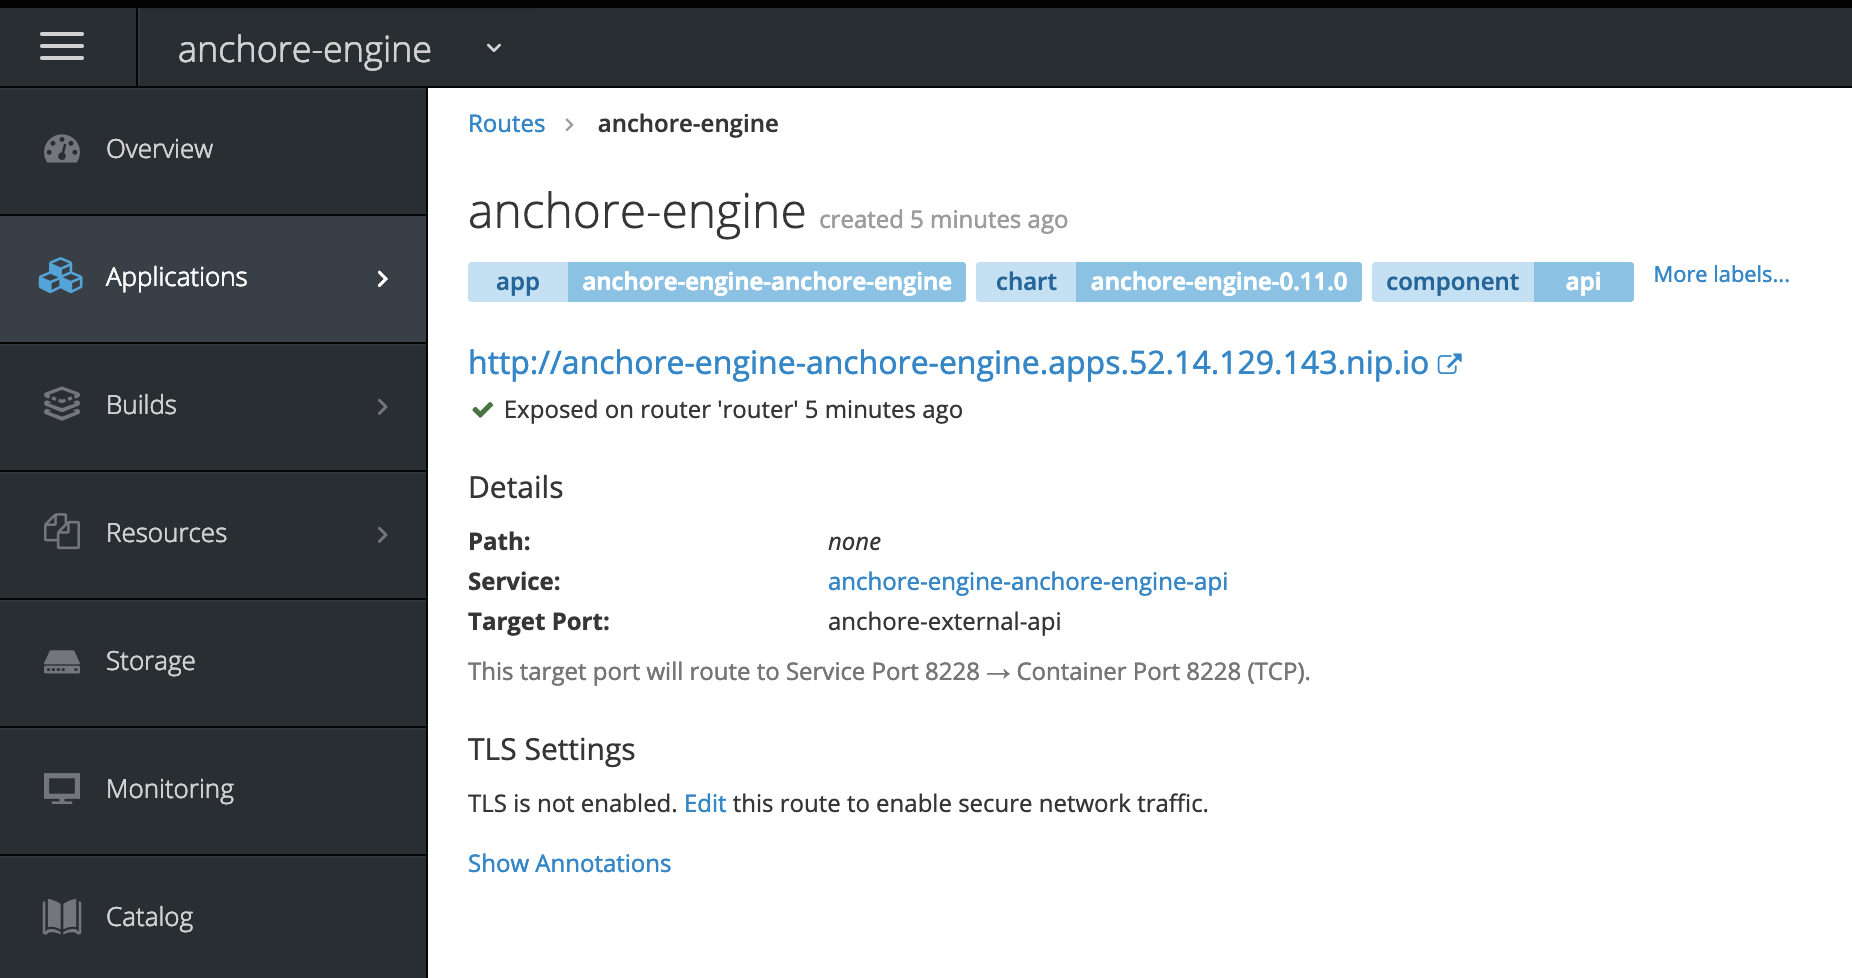 Hostname of route set in Anchore CLI URL environment variable.